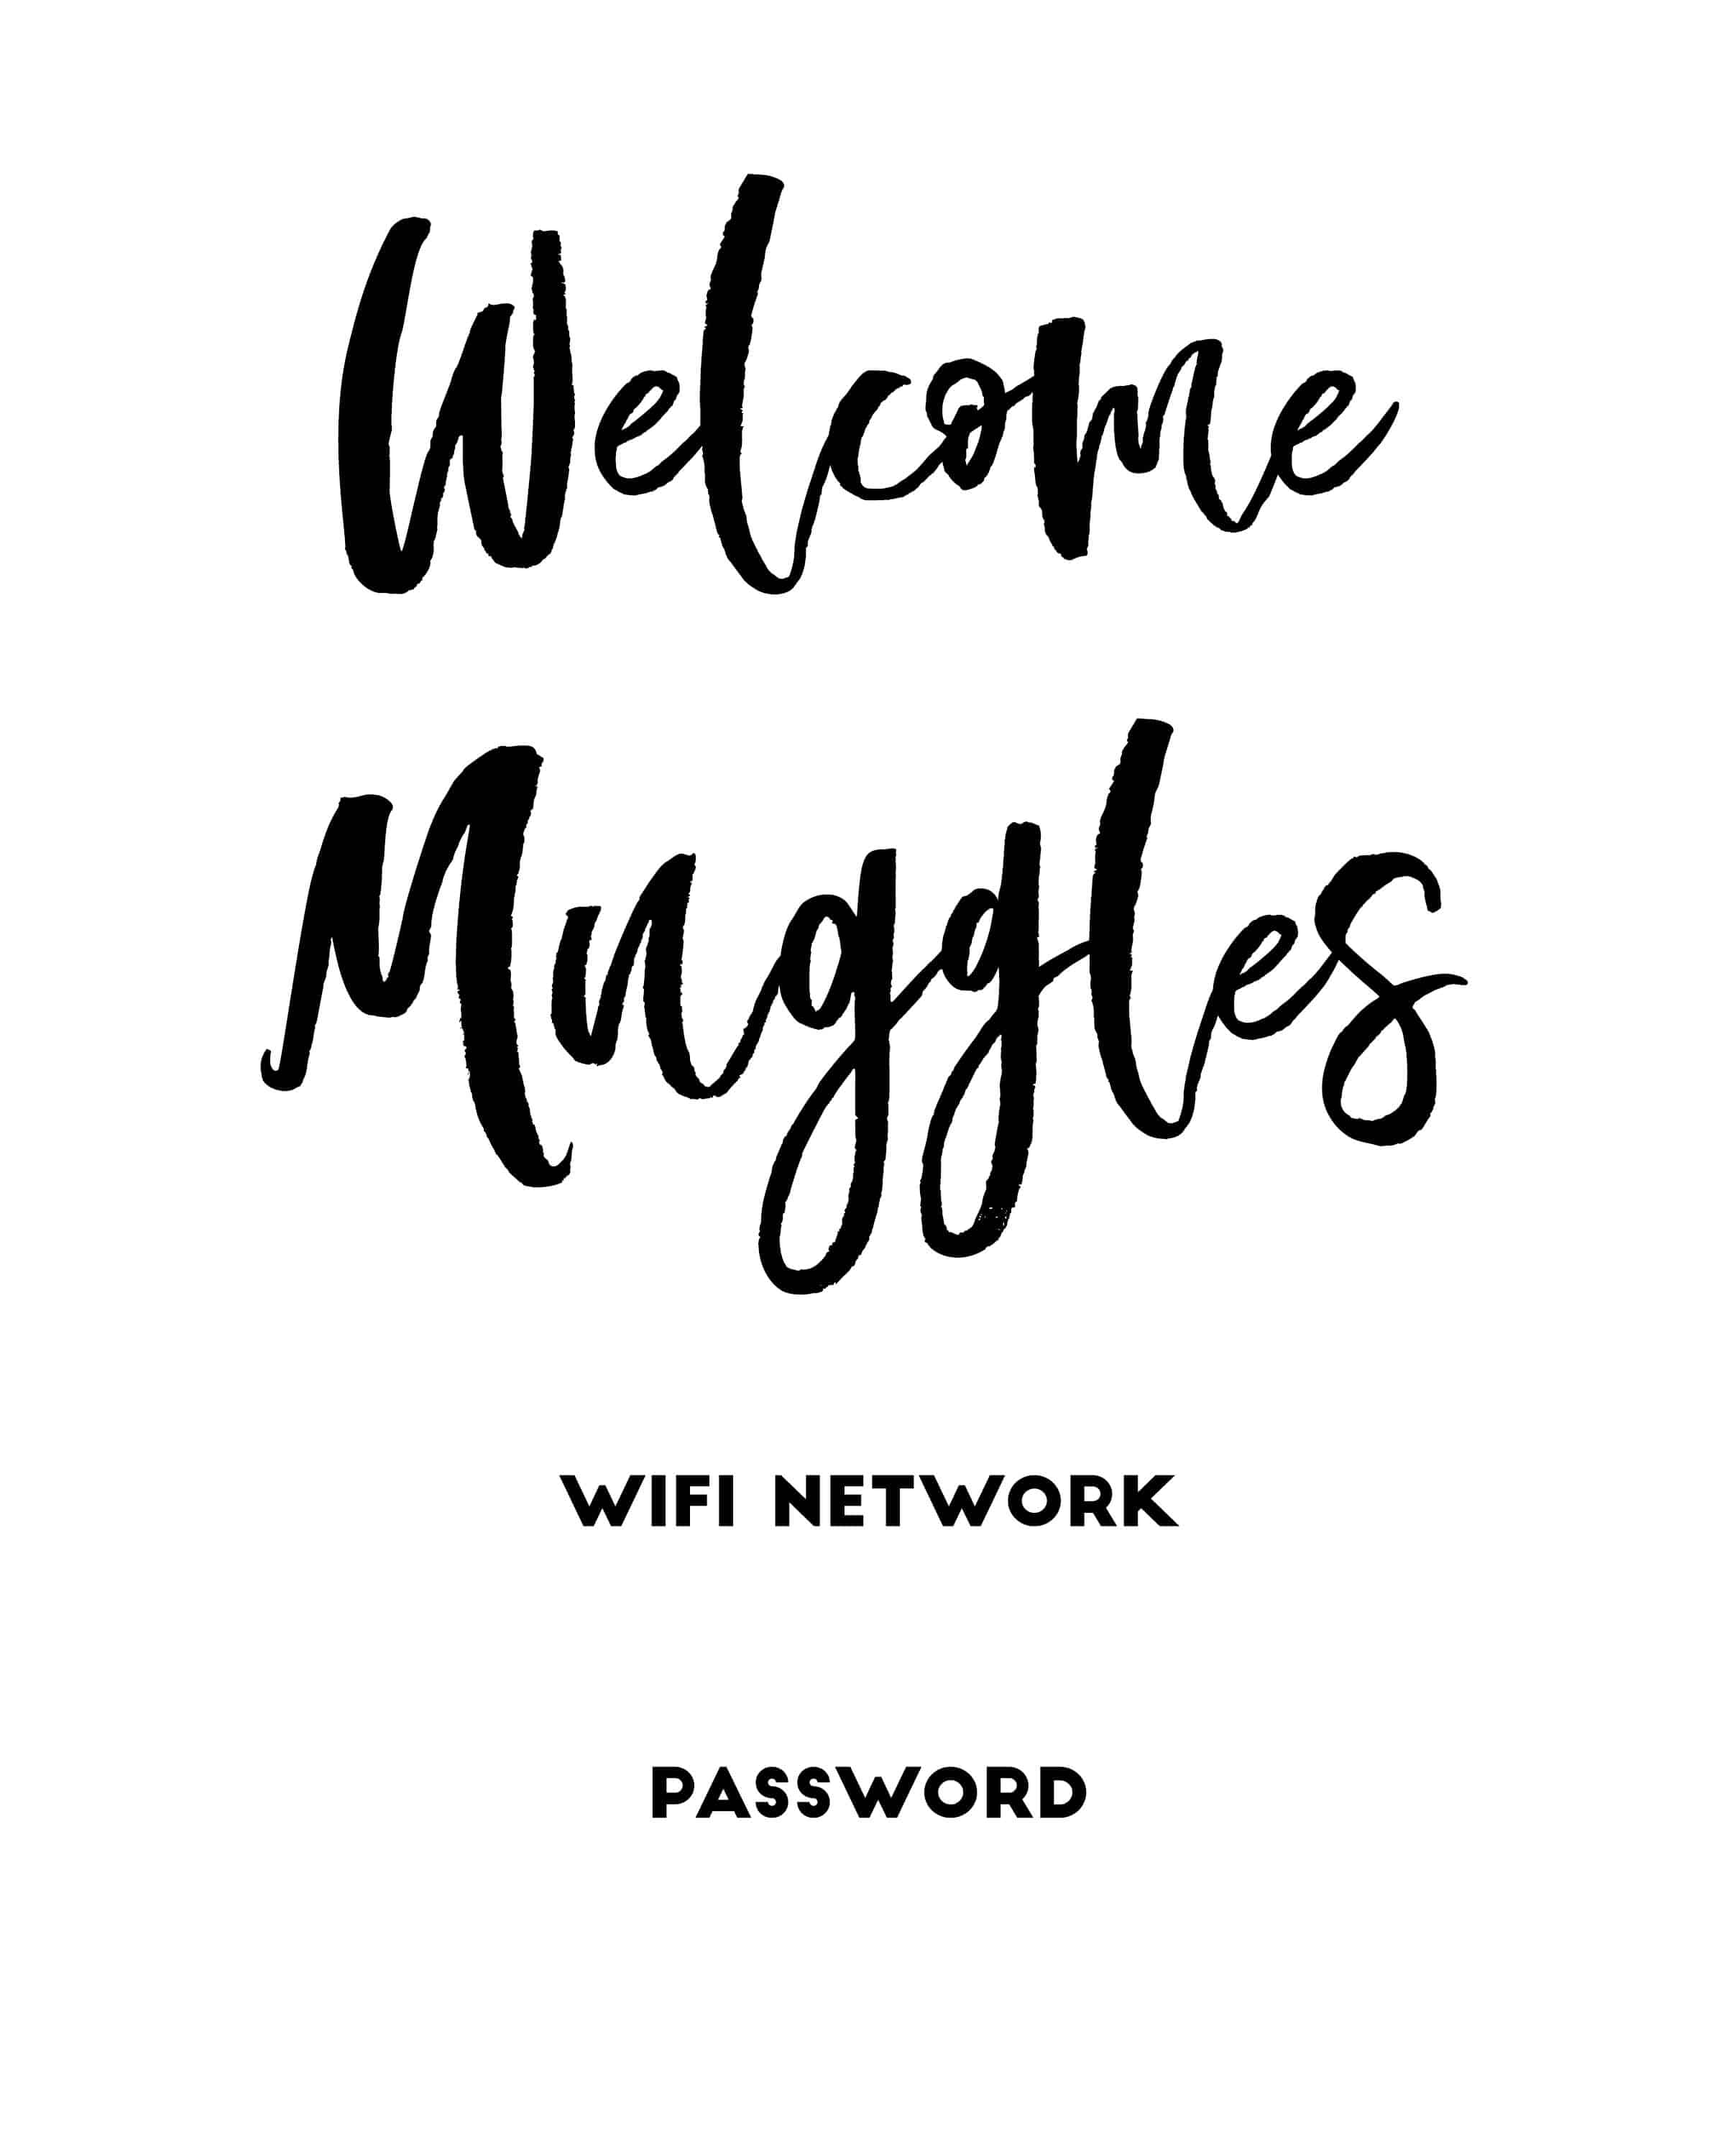 photograph regarding Wifi Password Sign Printable known as Welcome Muggles\